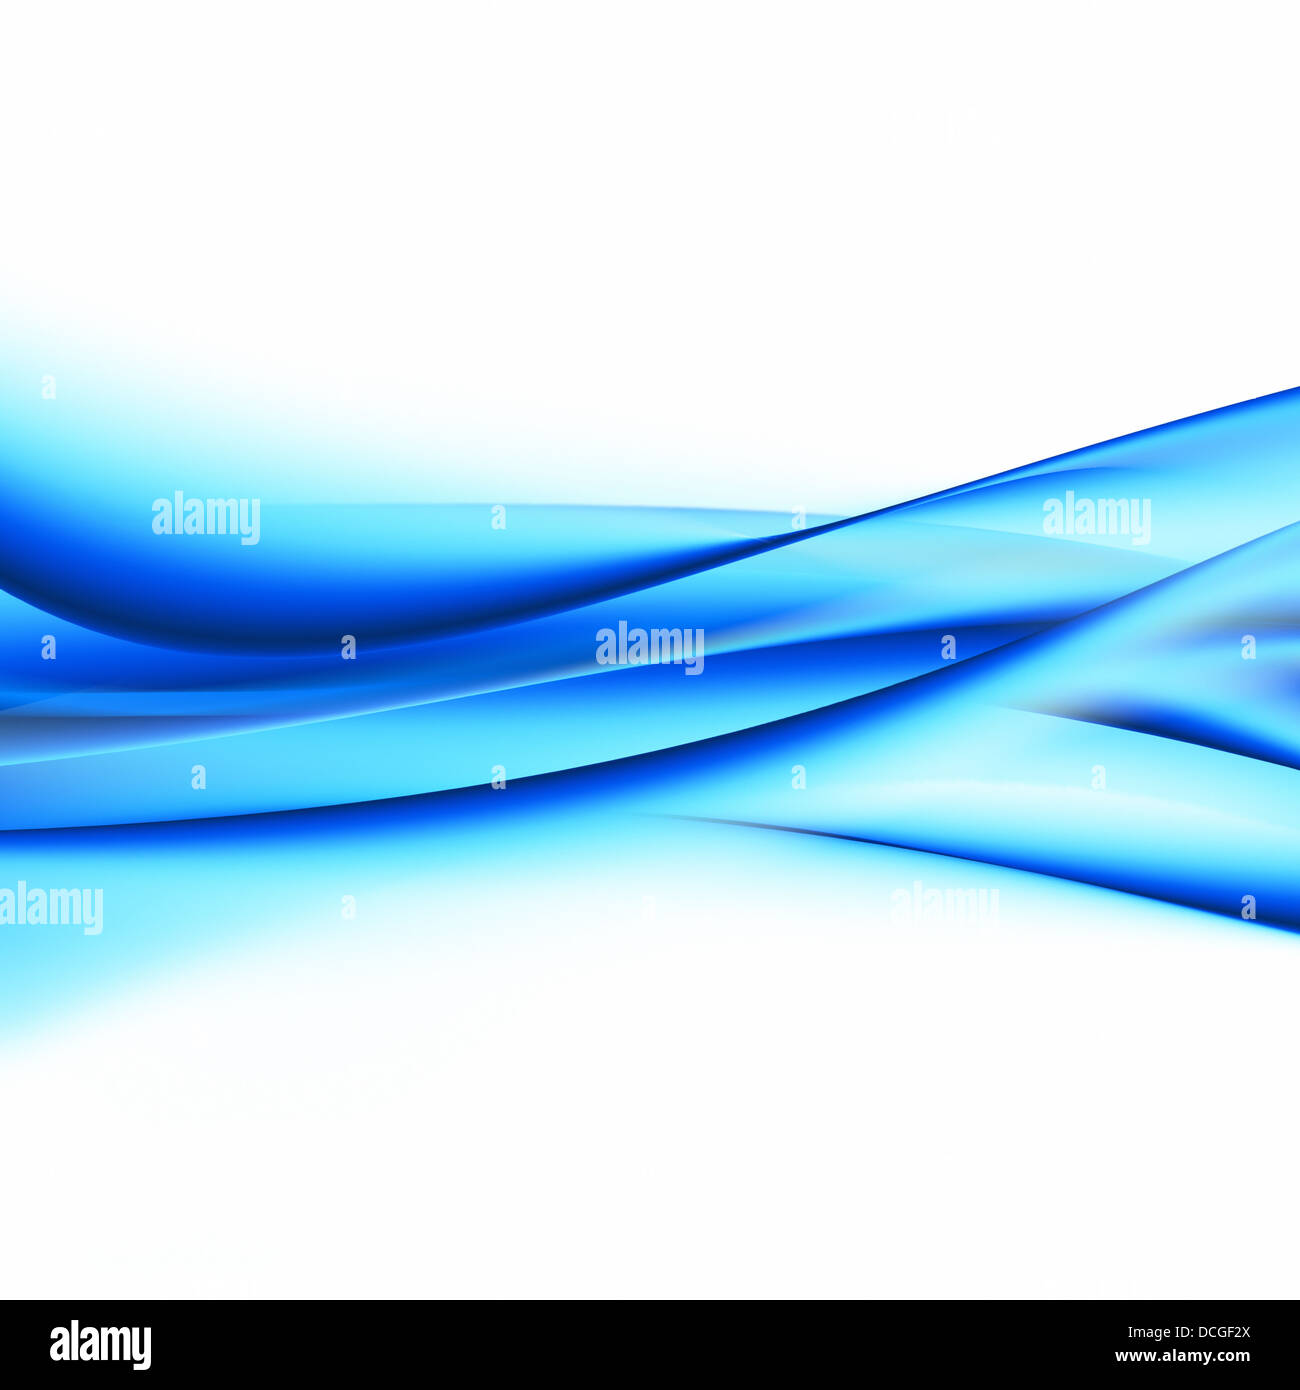 abstract graphic - Stock Image